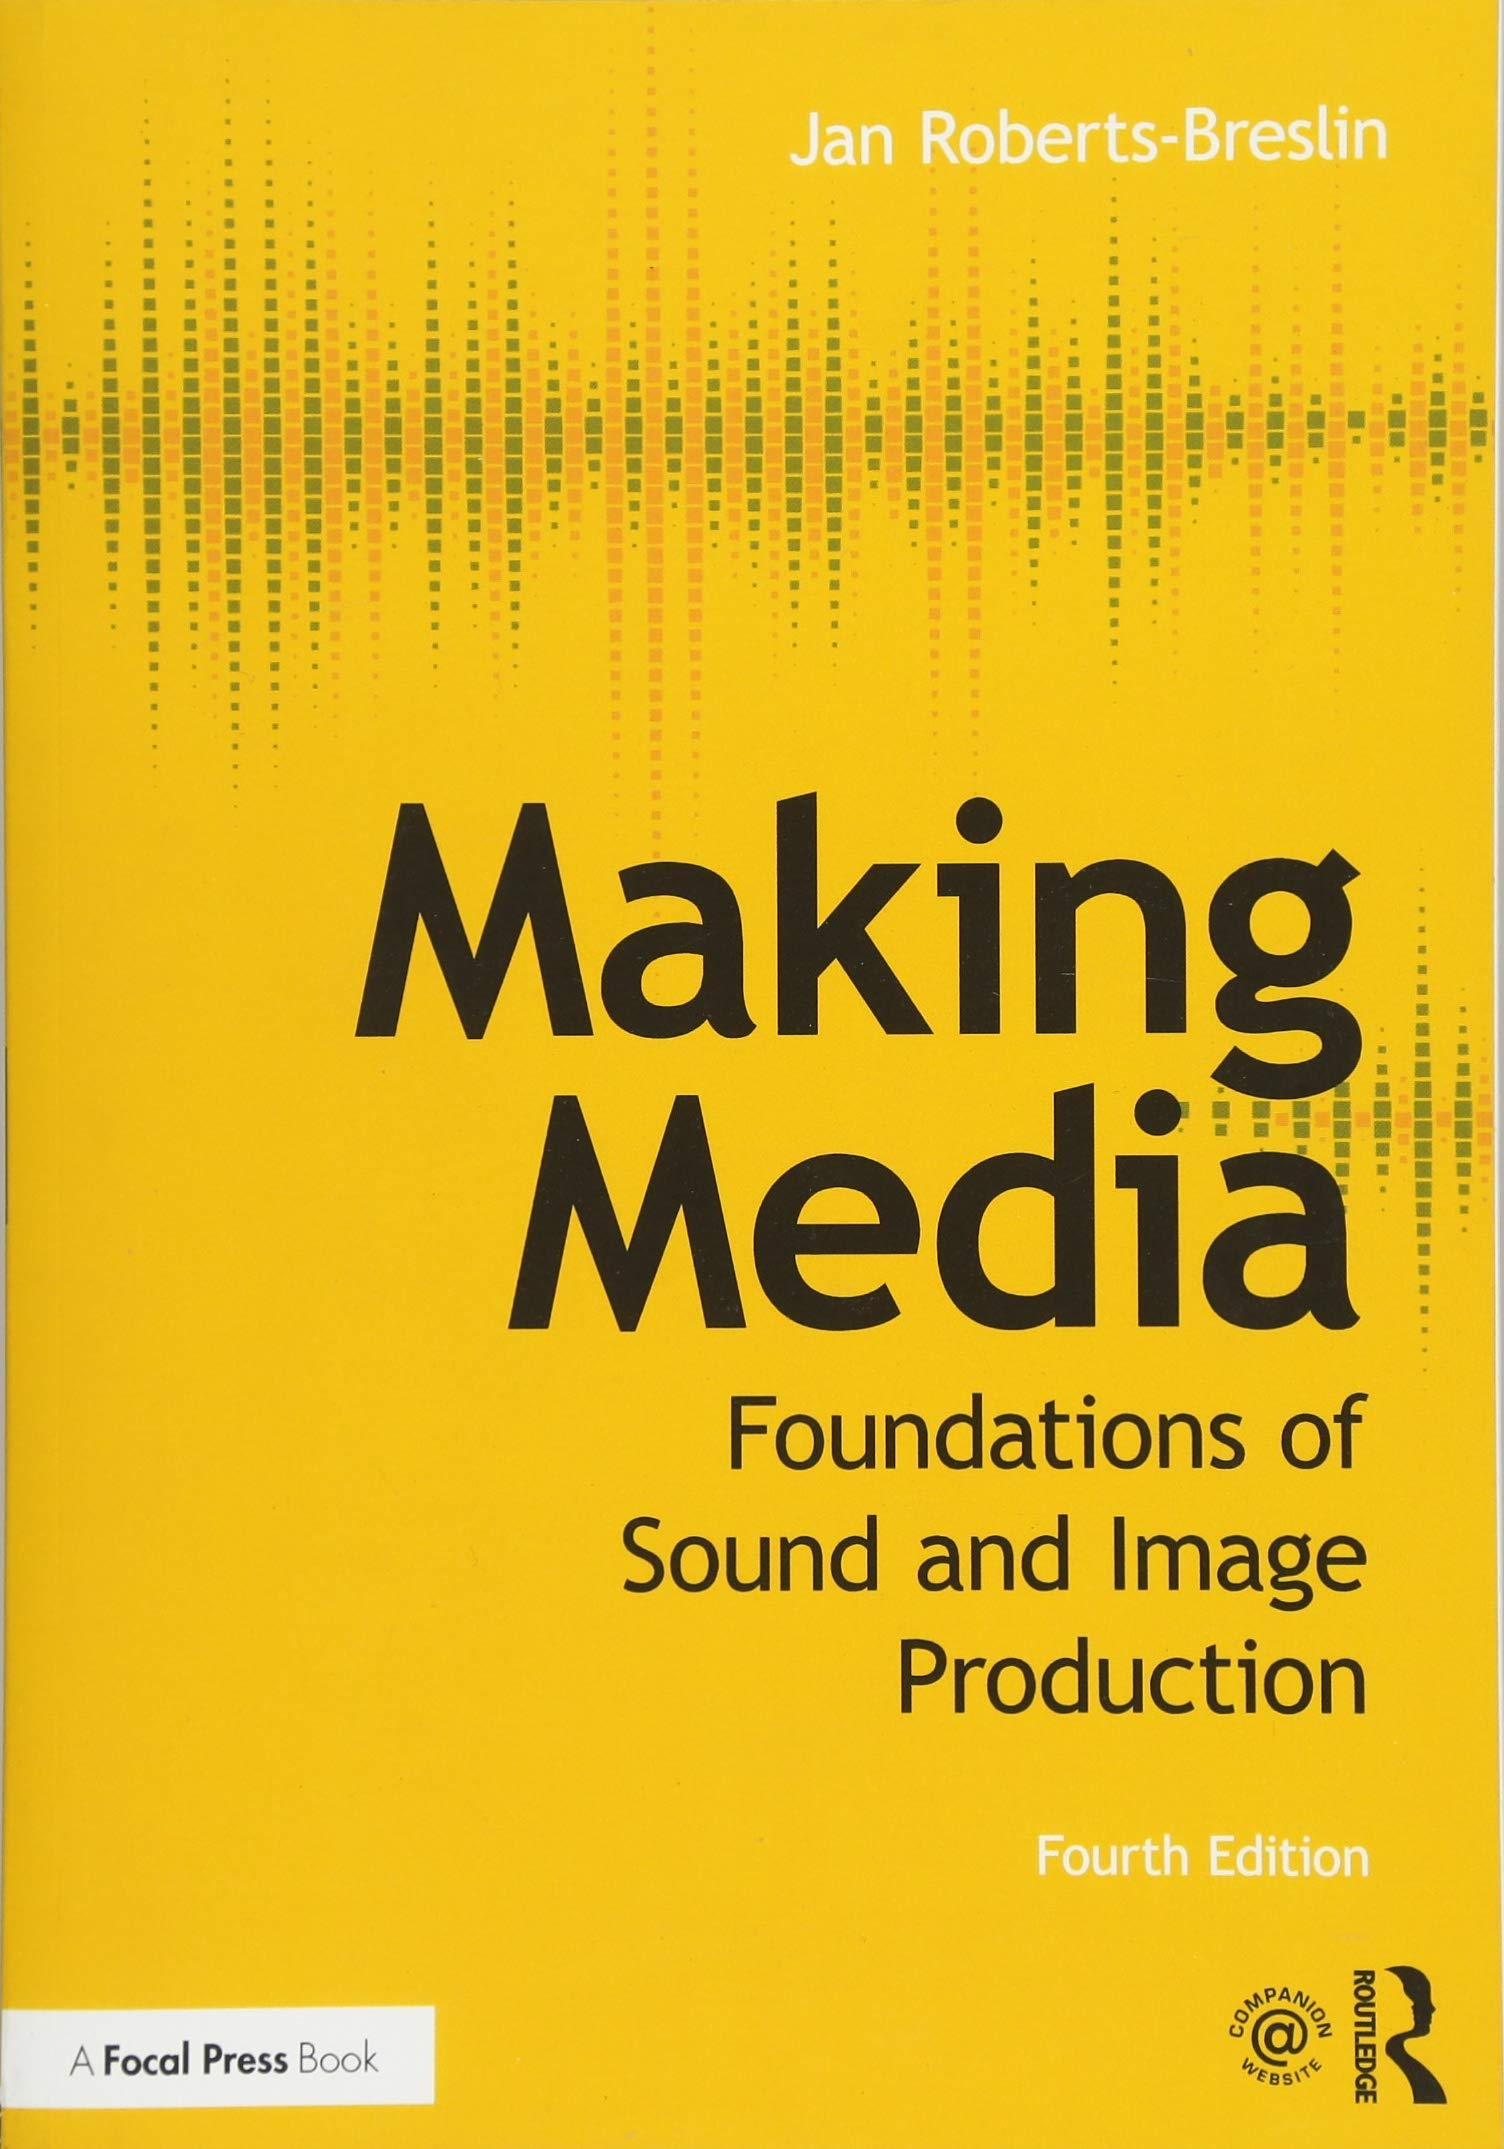 Making Media: Foundations of Sound and Image Production by Routledge